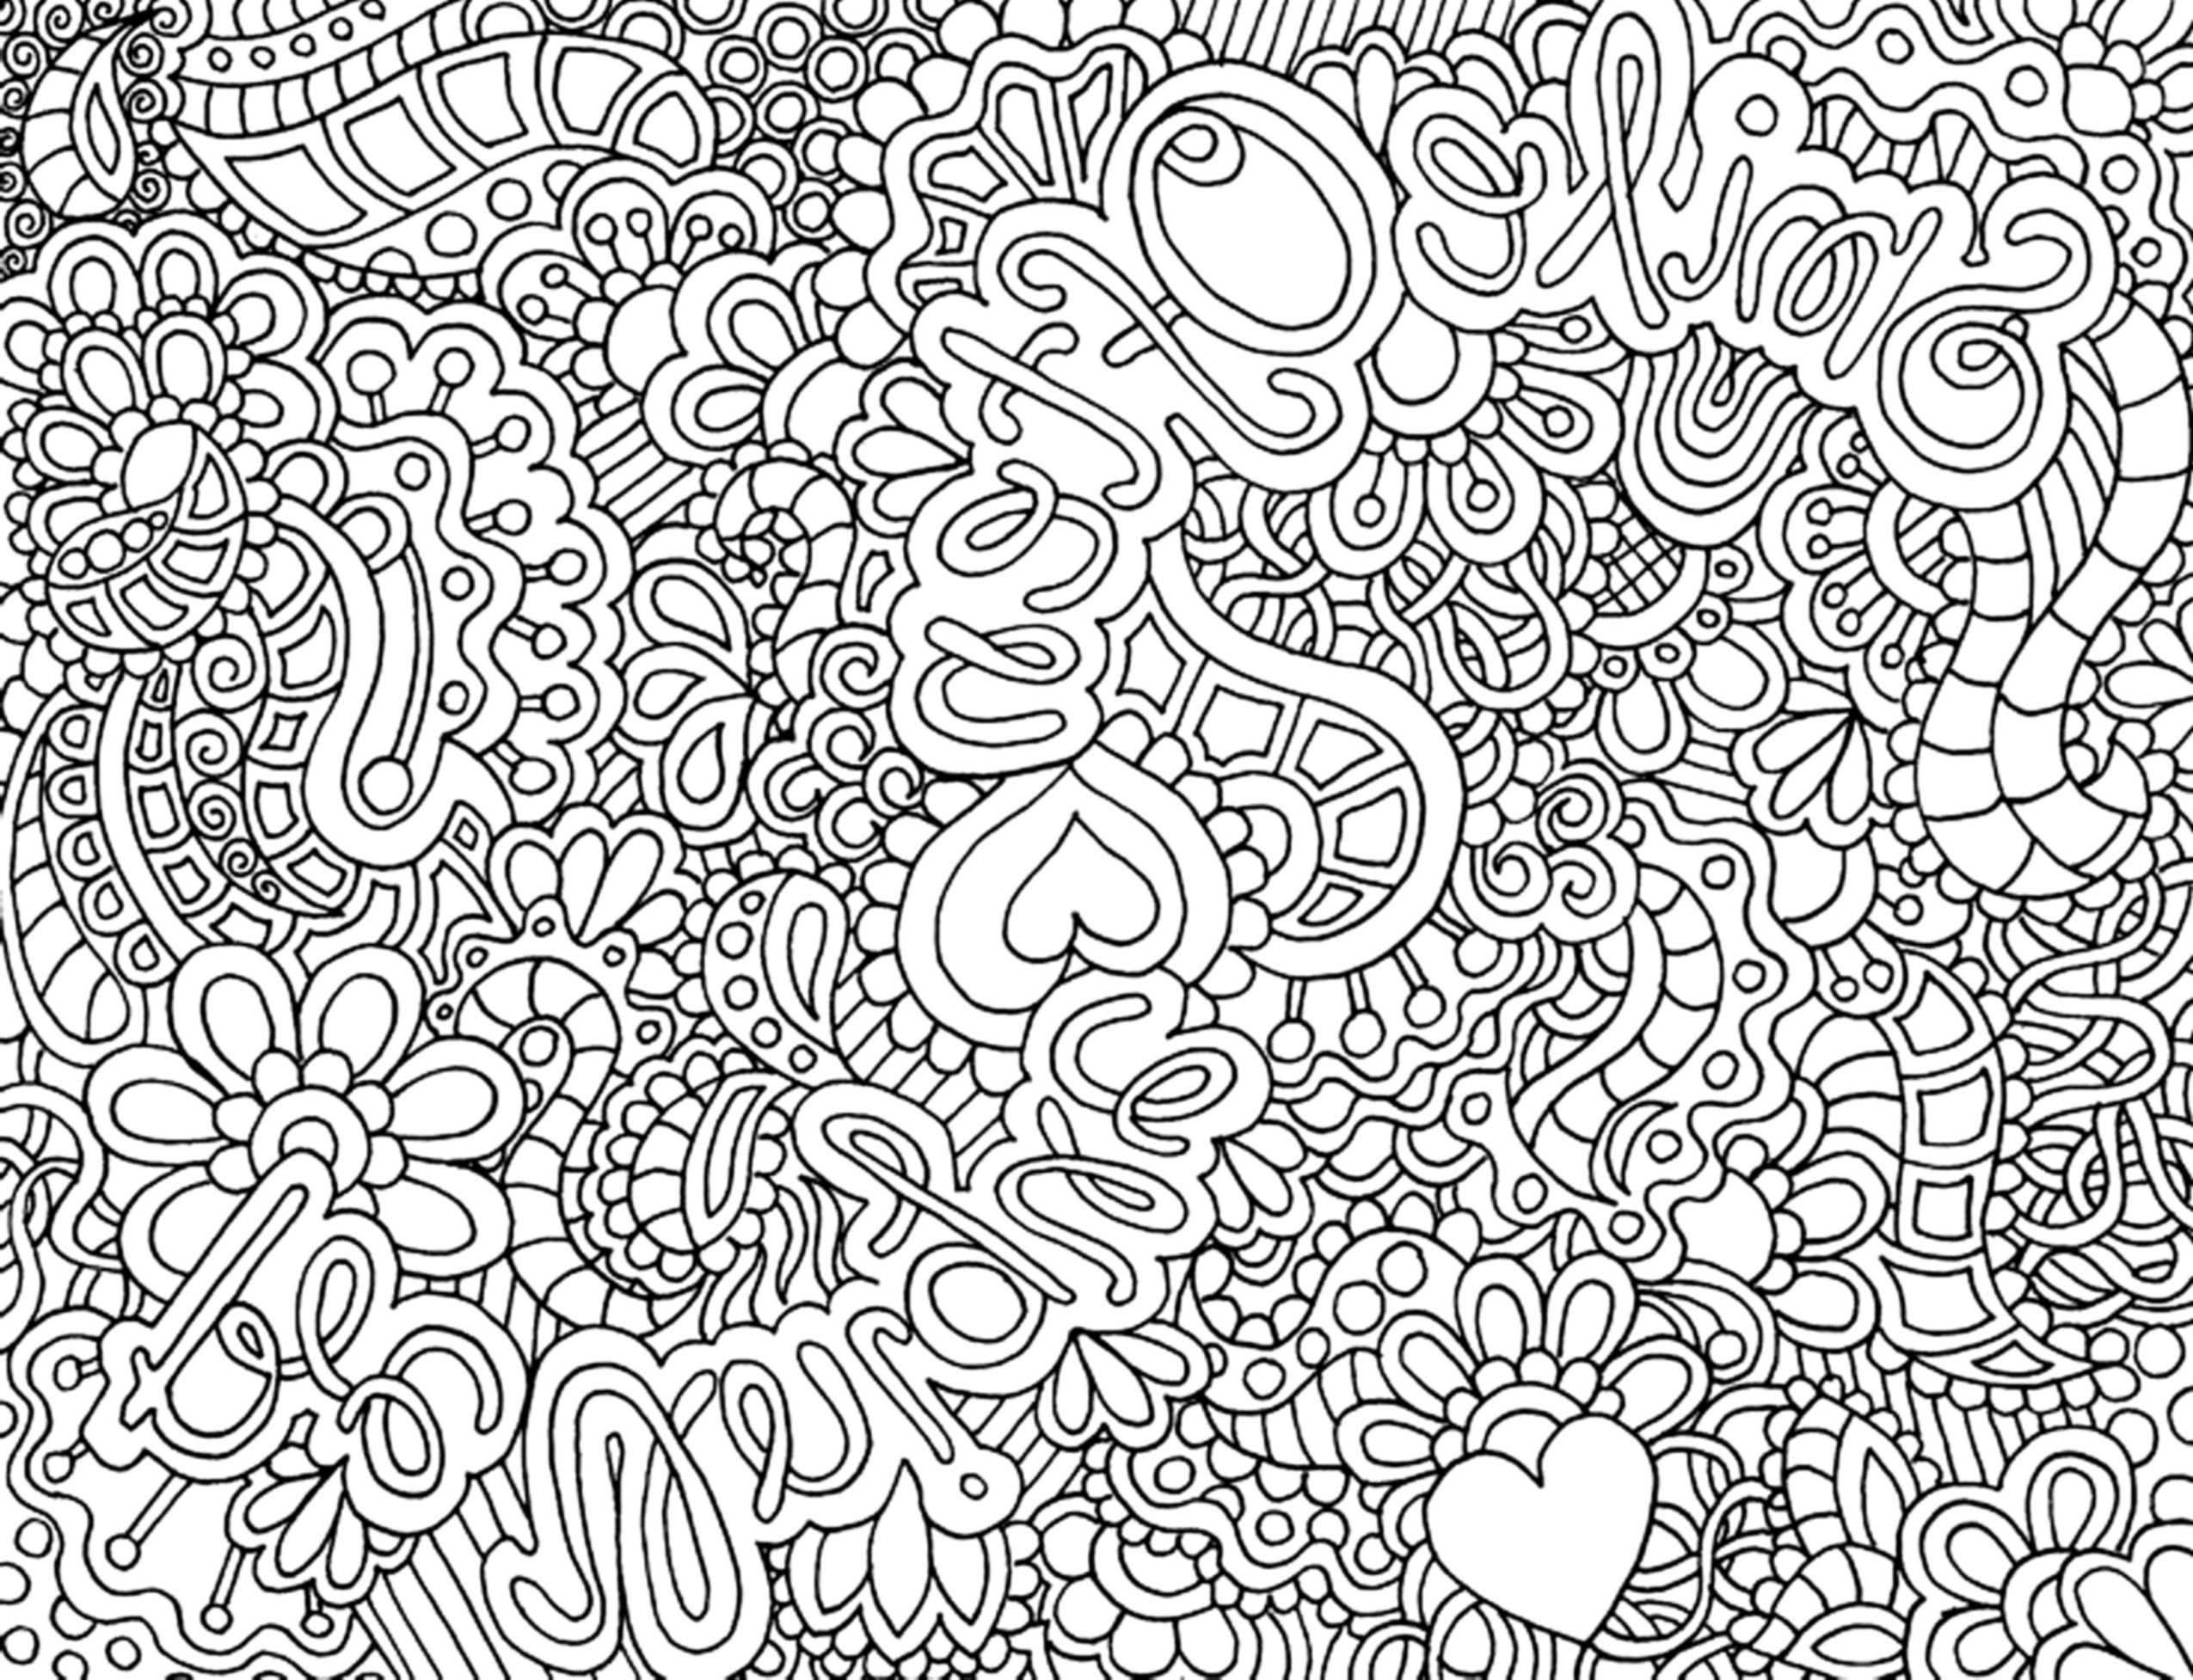 Complex Coloring Pages for Teenagers | A מנדלות | Pinterest ...